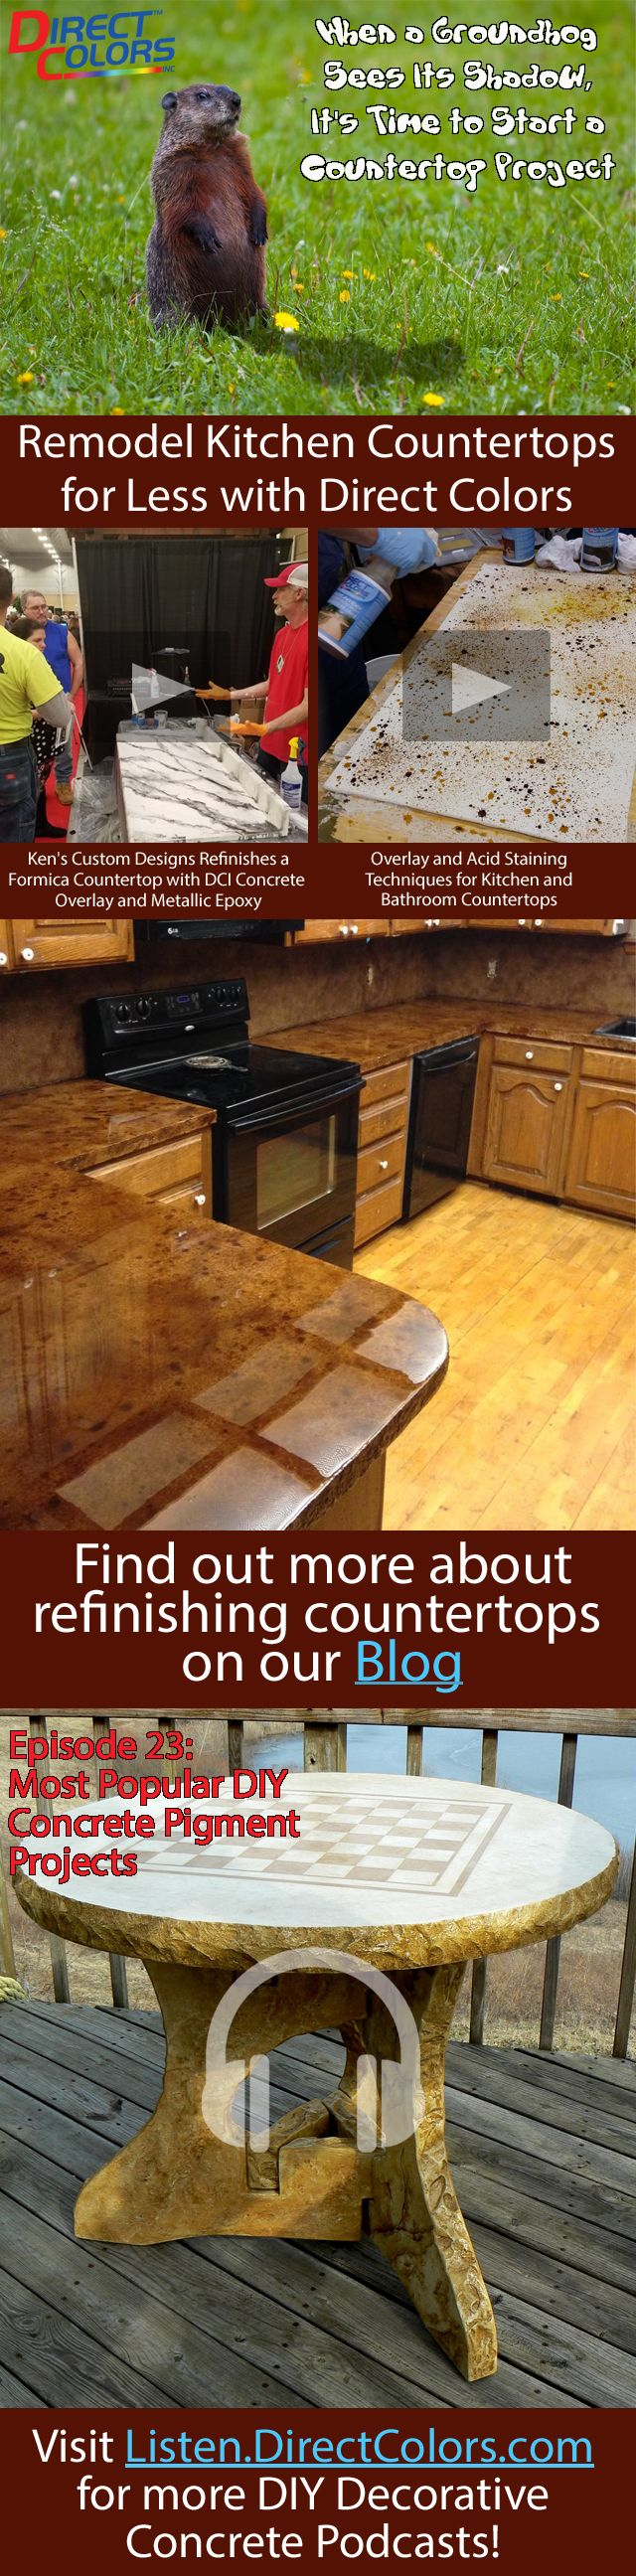 143 best images about Do It Yourself Concrete Countertops on Pinterest